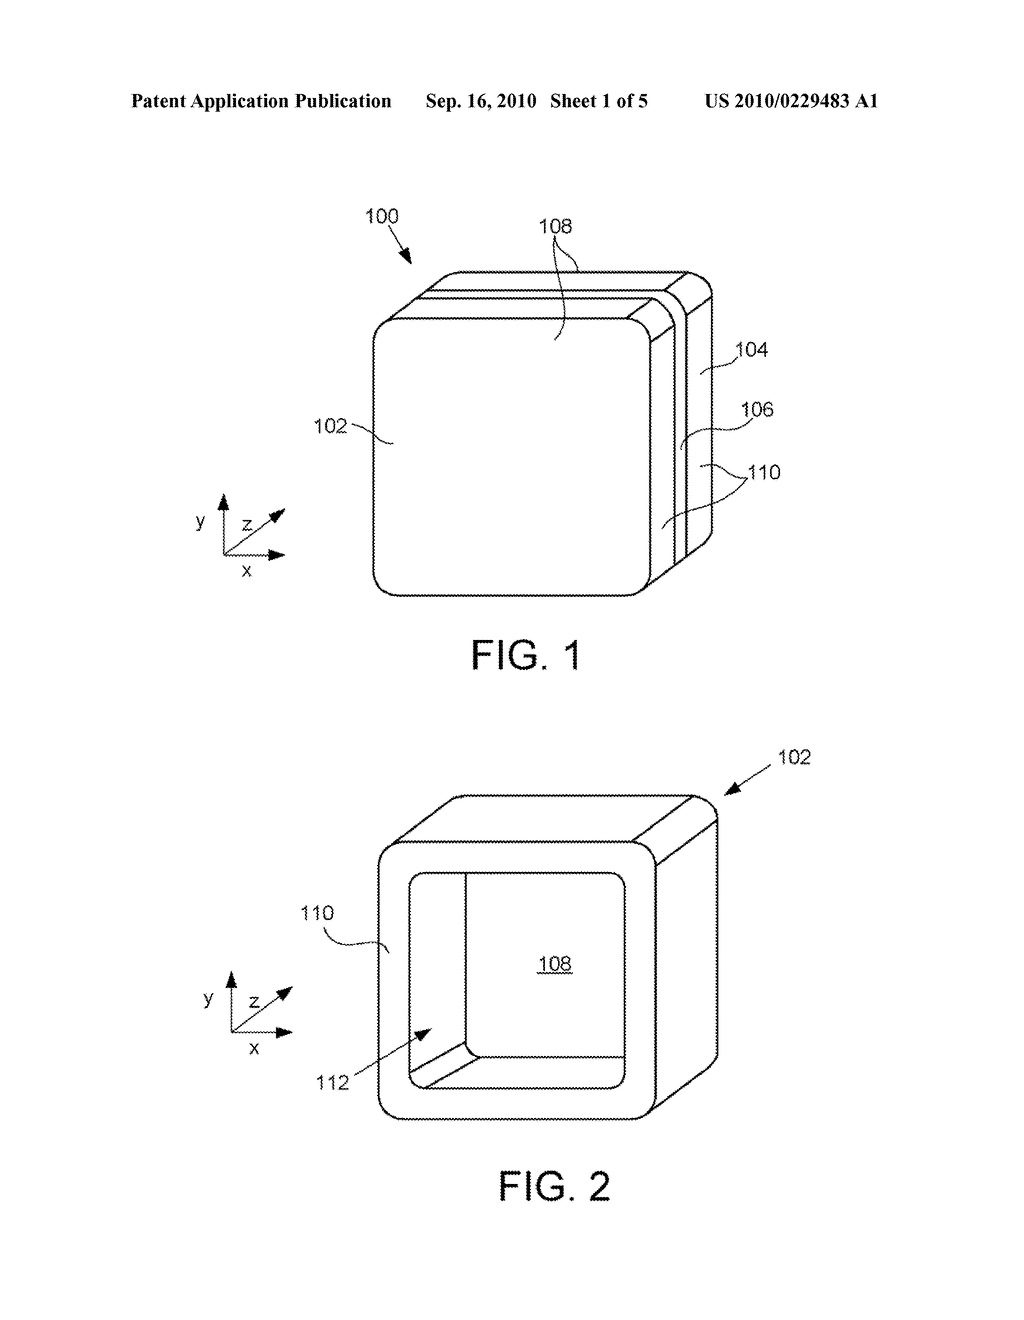 FIRE-RESISTANT GLASS BLOCK HAVING A THERMAL BREAK AND METHODS FOR